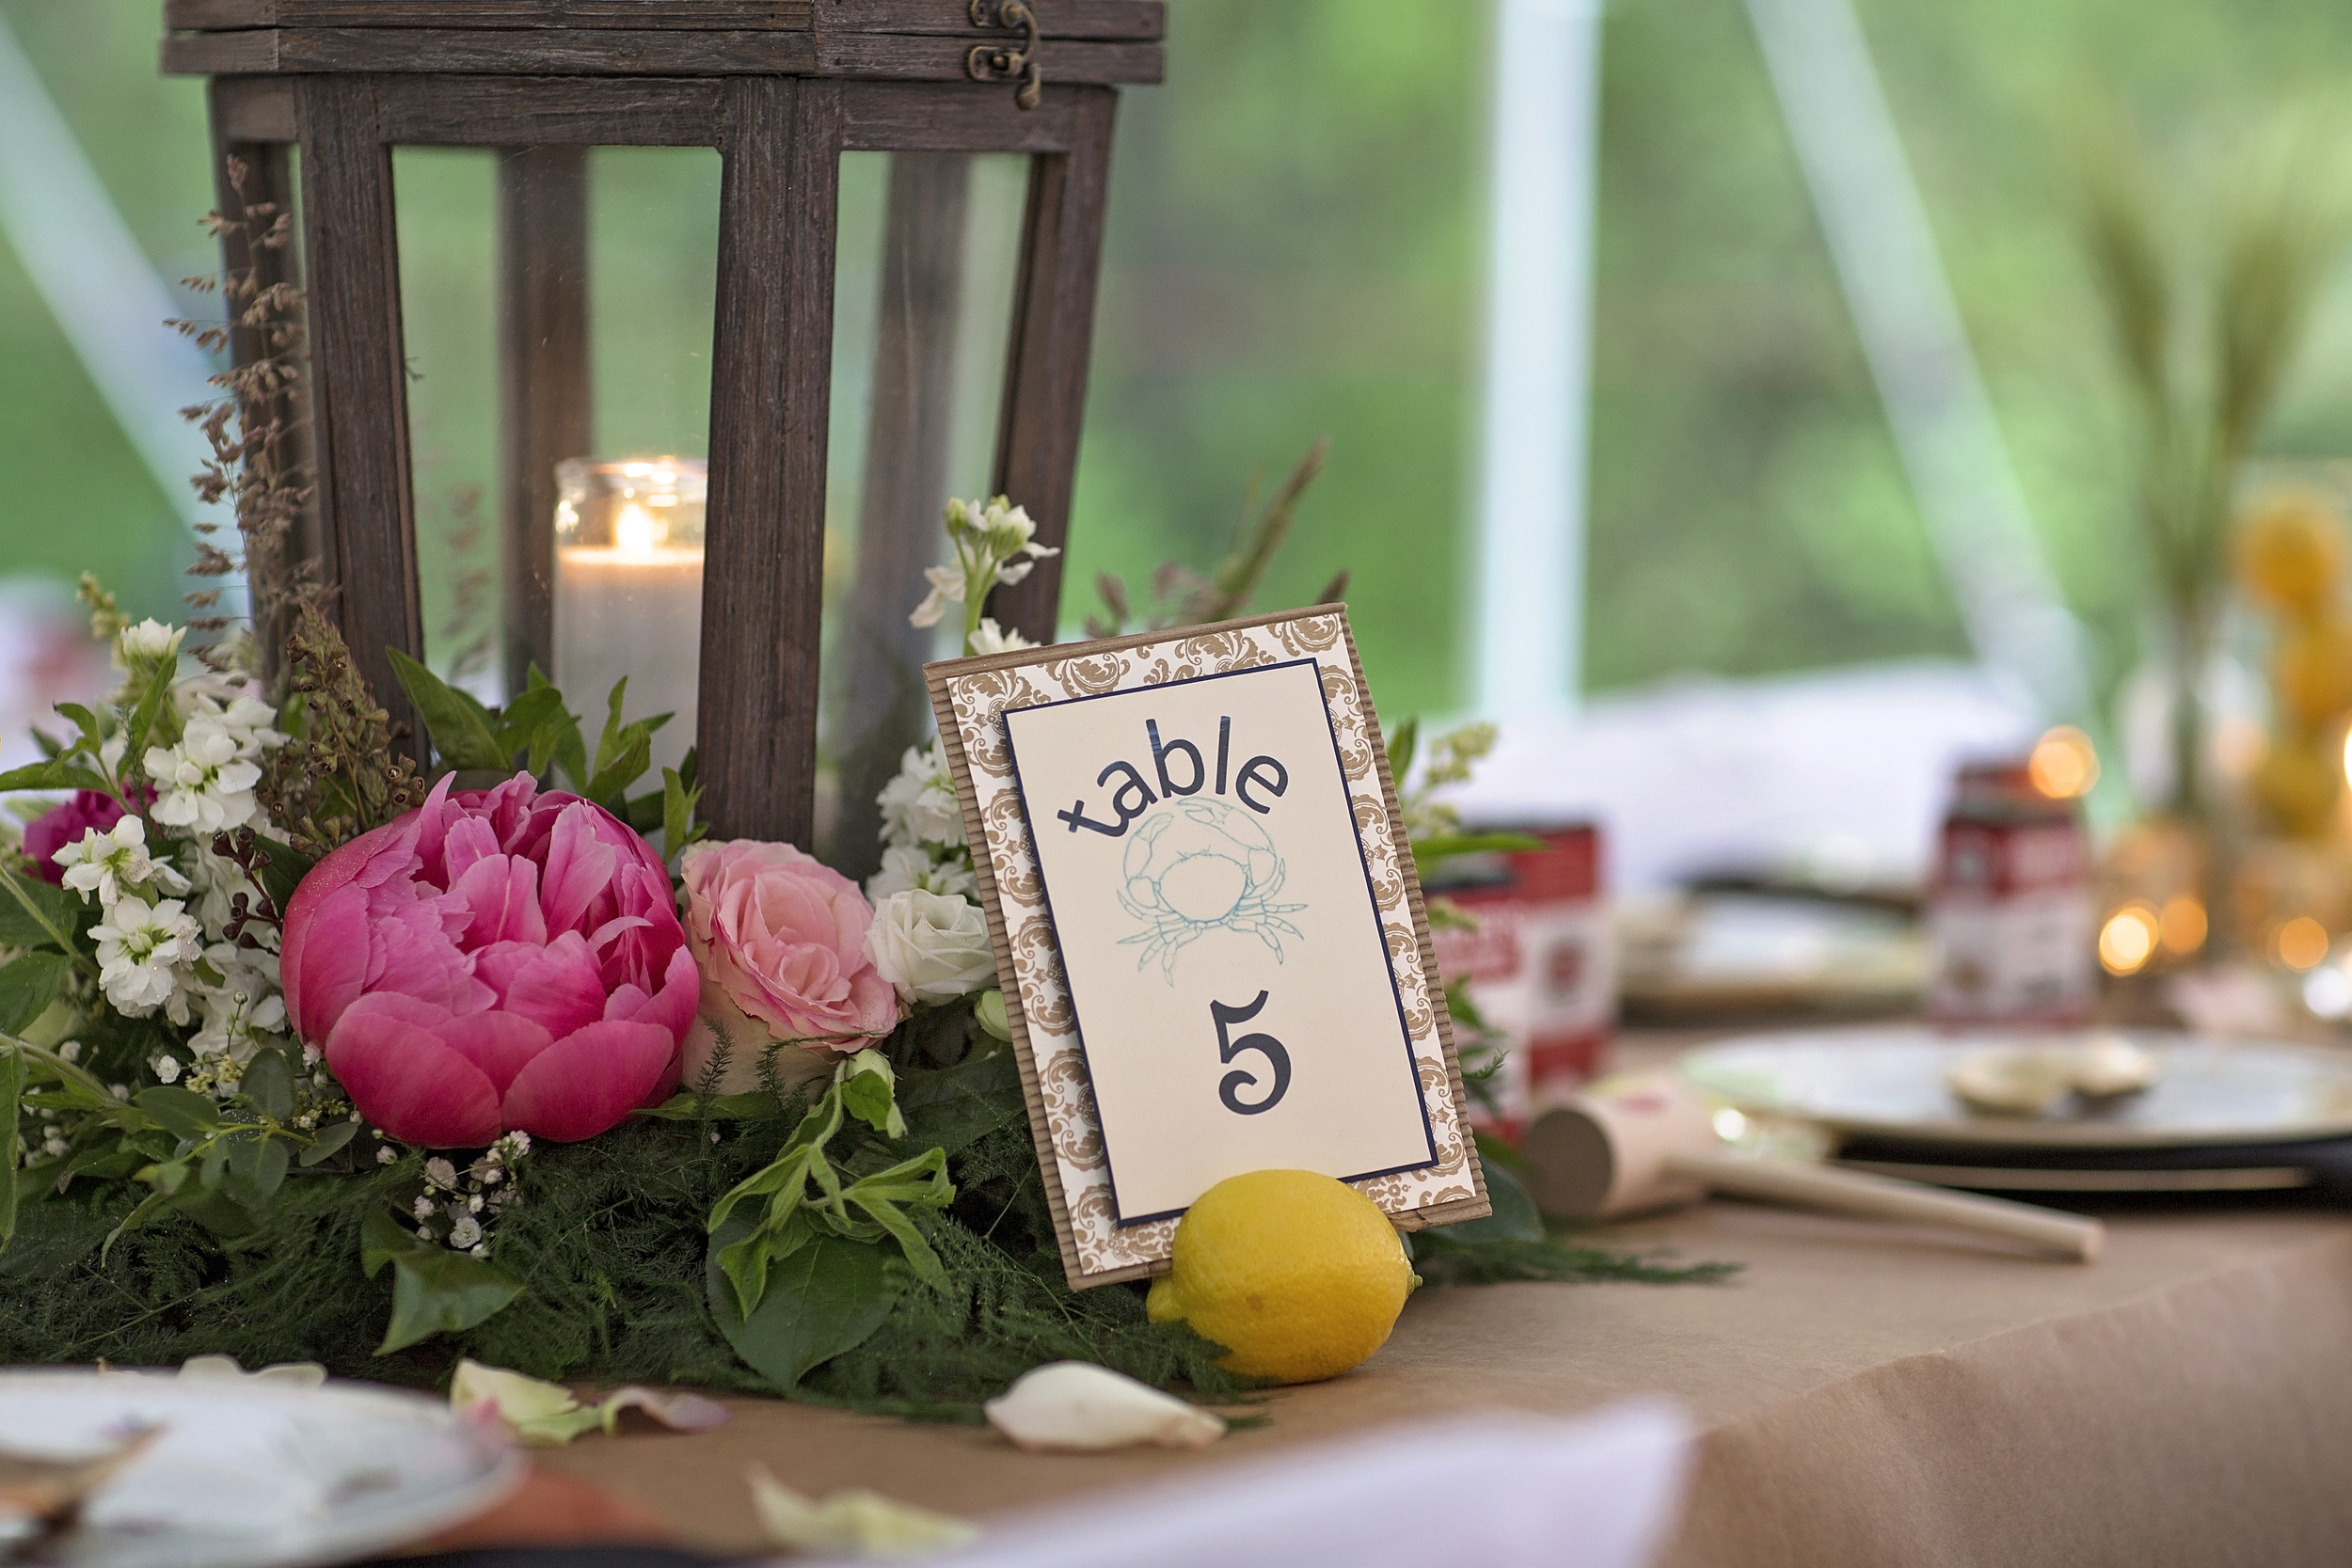 Table number & invitations by Dillon design co. Roxanne Lee